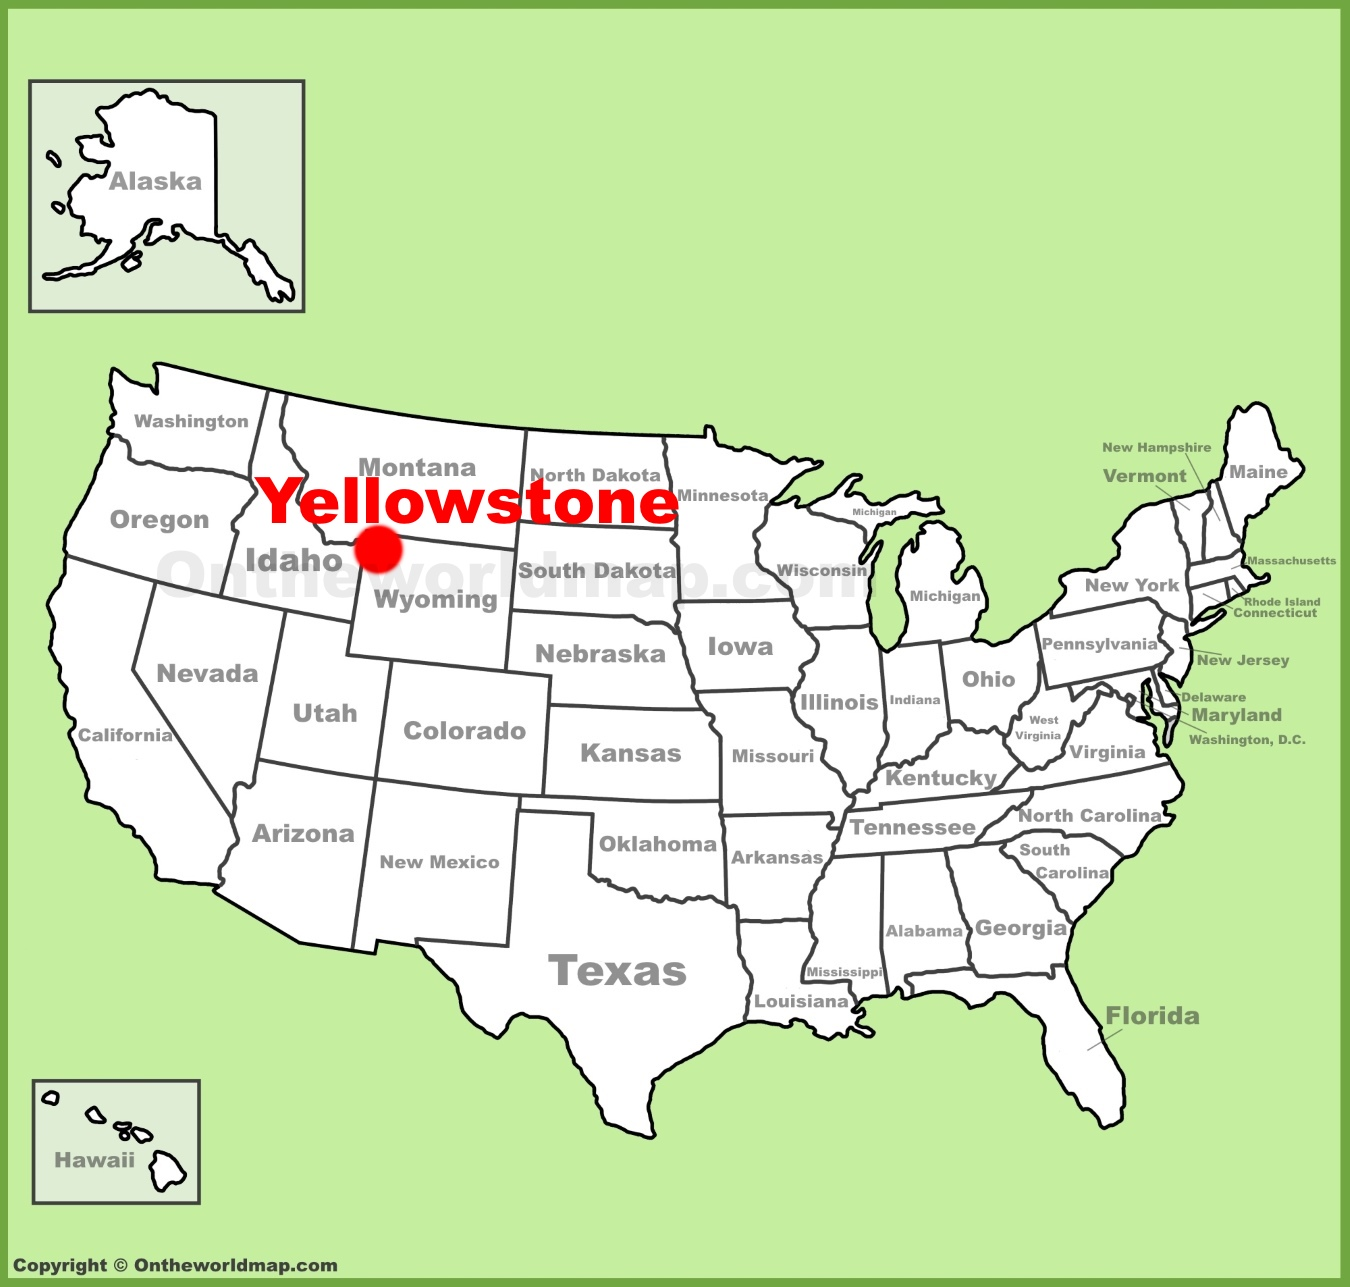 Yellowstone Location On The Us Map - Yellowstone-us-map